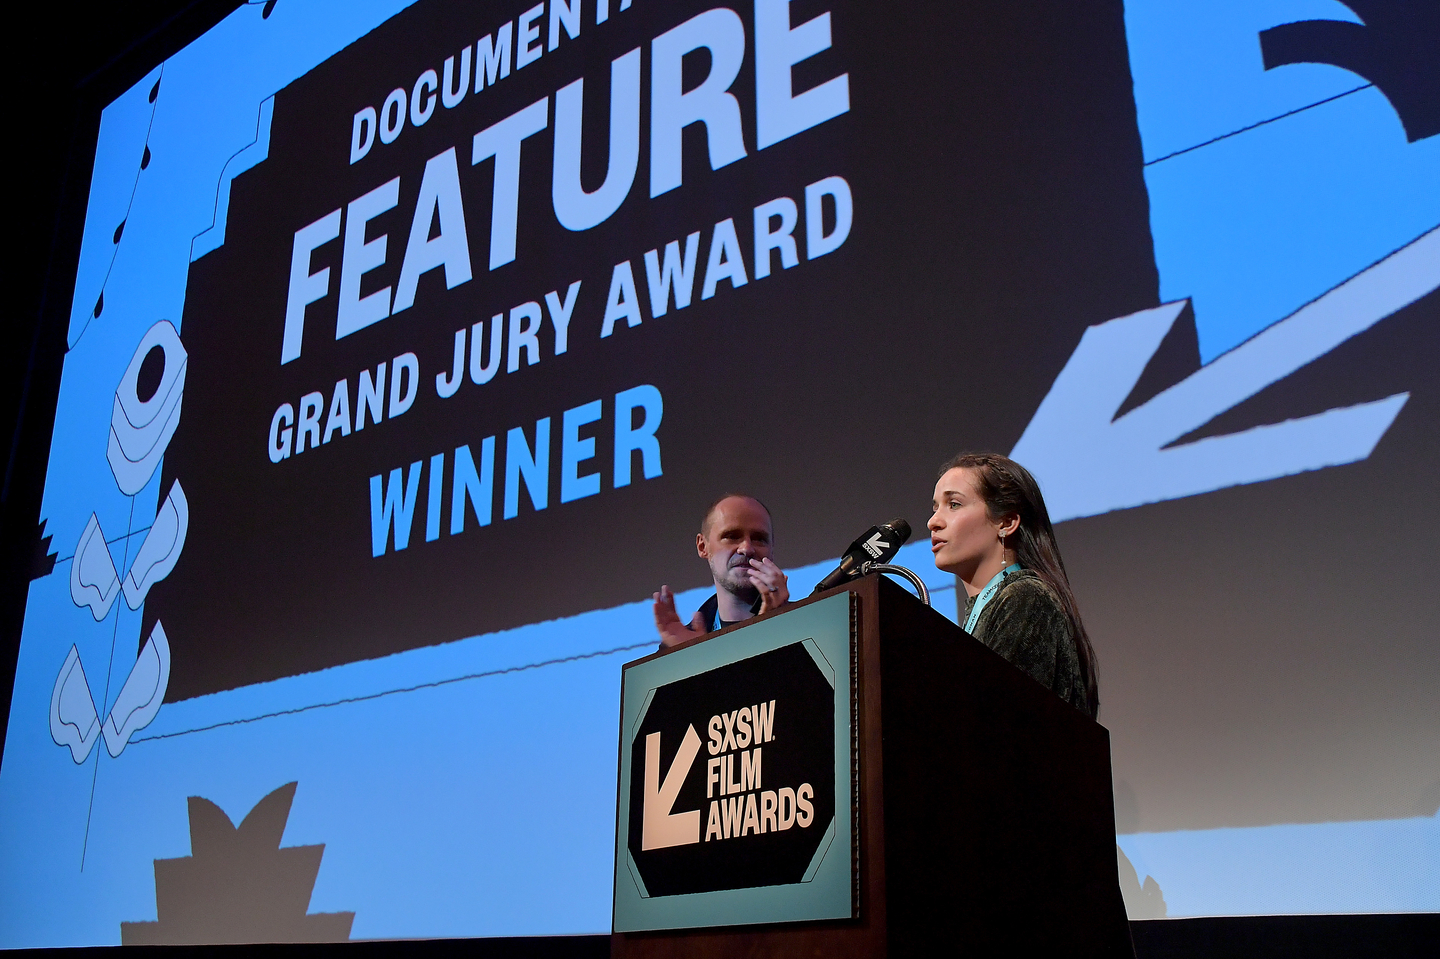 Edward Watts and Waad al-Kateab accept the Documentary Feature Grand Jury Award for their film For Sama at the SXSW Film Awards at the Paramount Theatre.